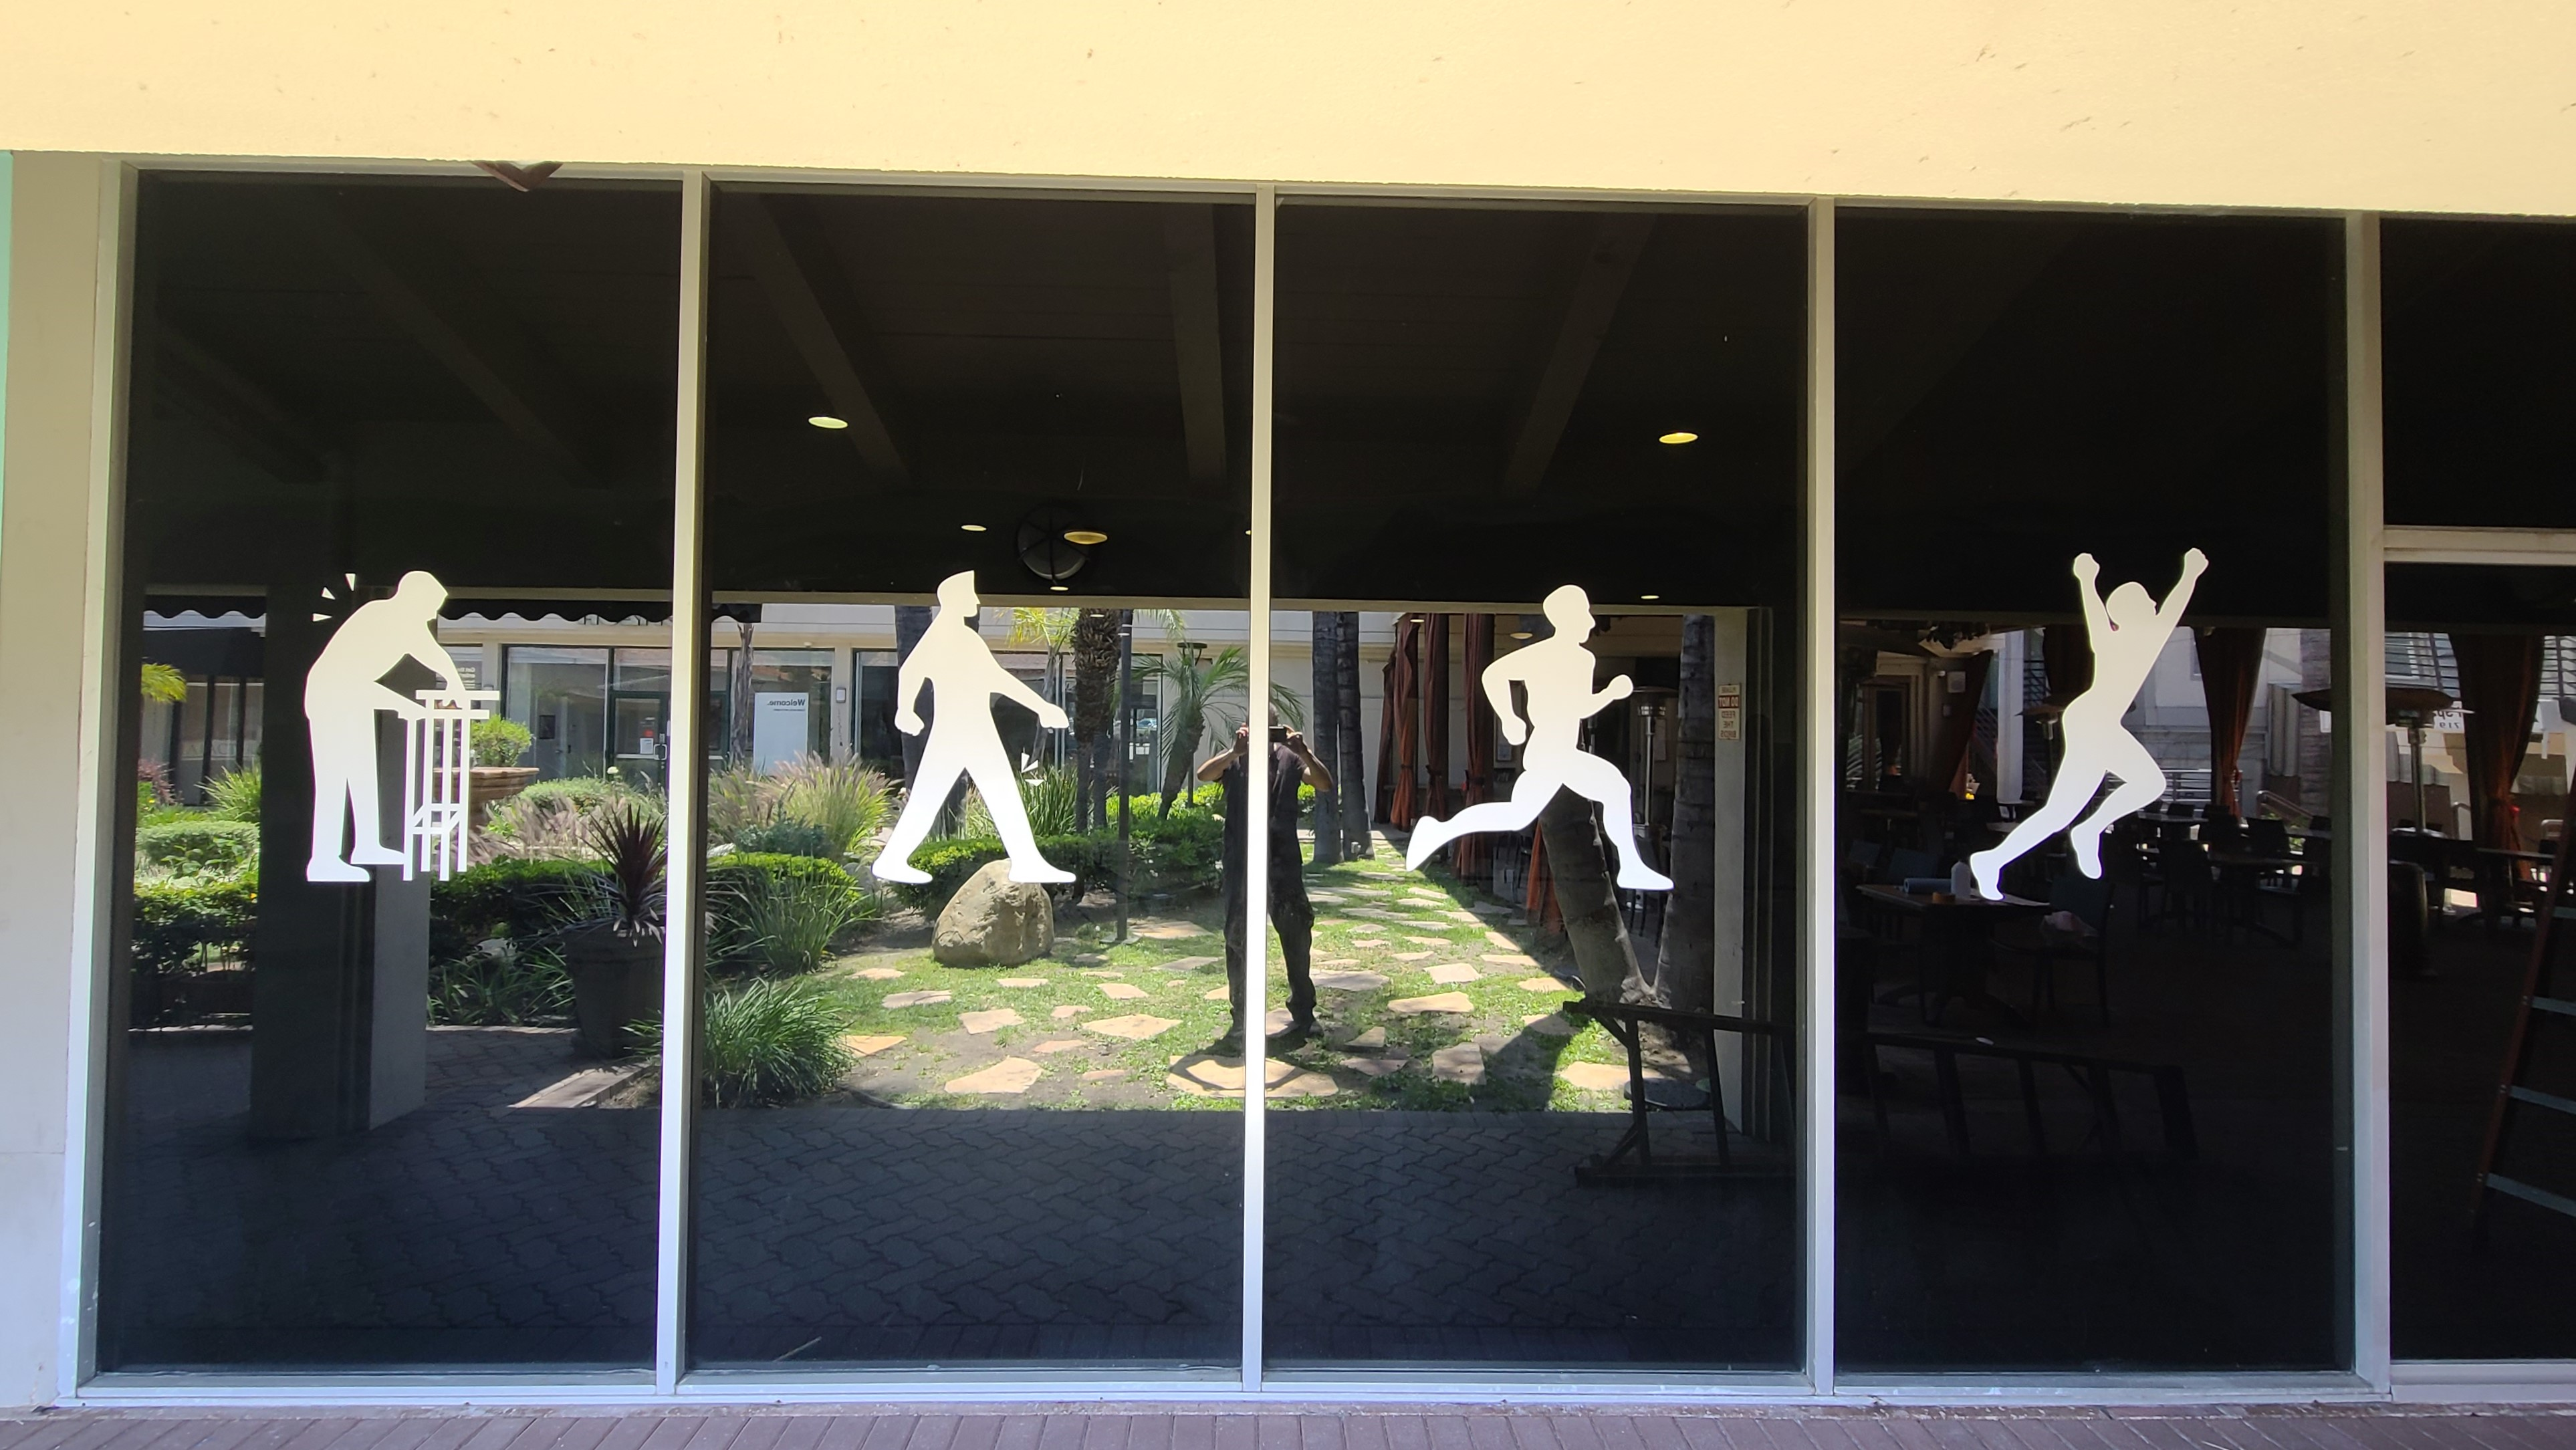 Building window graphics for Back 2 Health in Encino, as part of a comprehensive sign package for the physical therapy center.